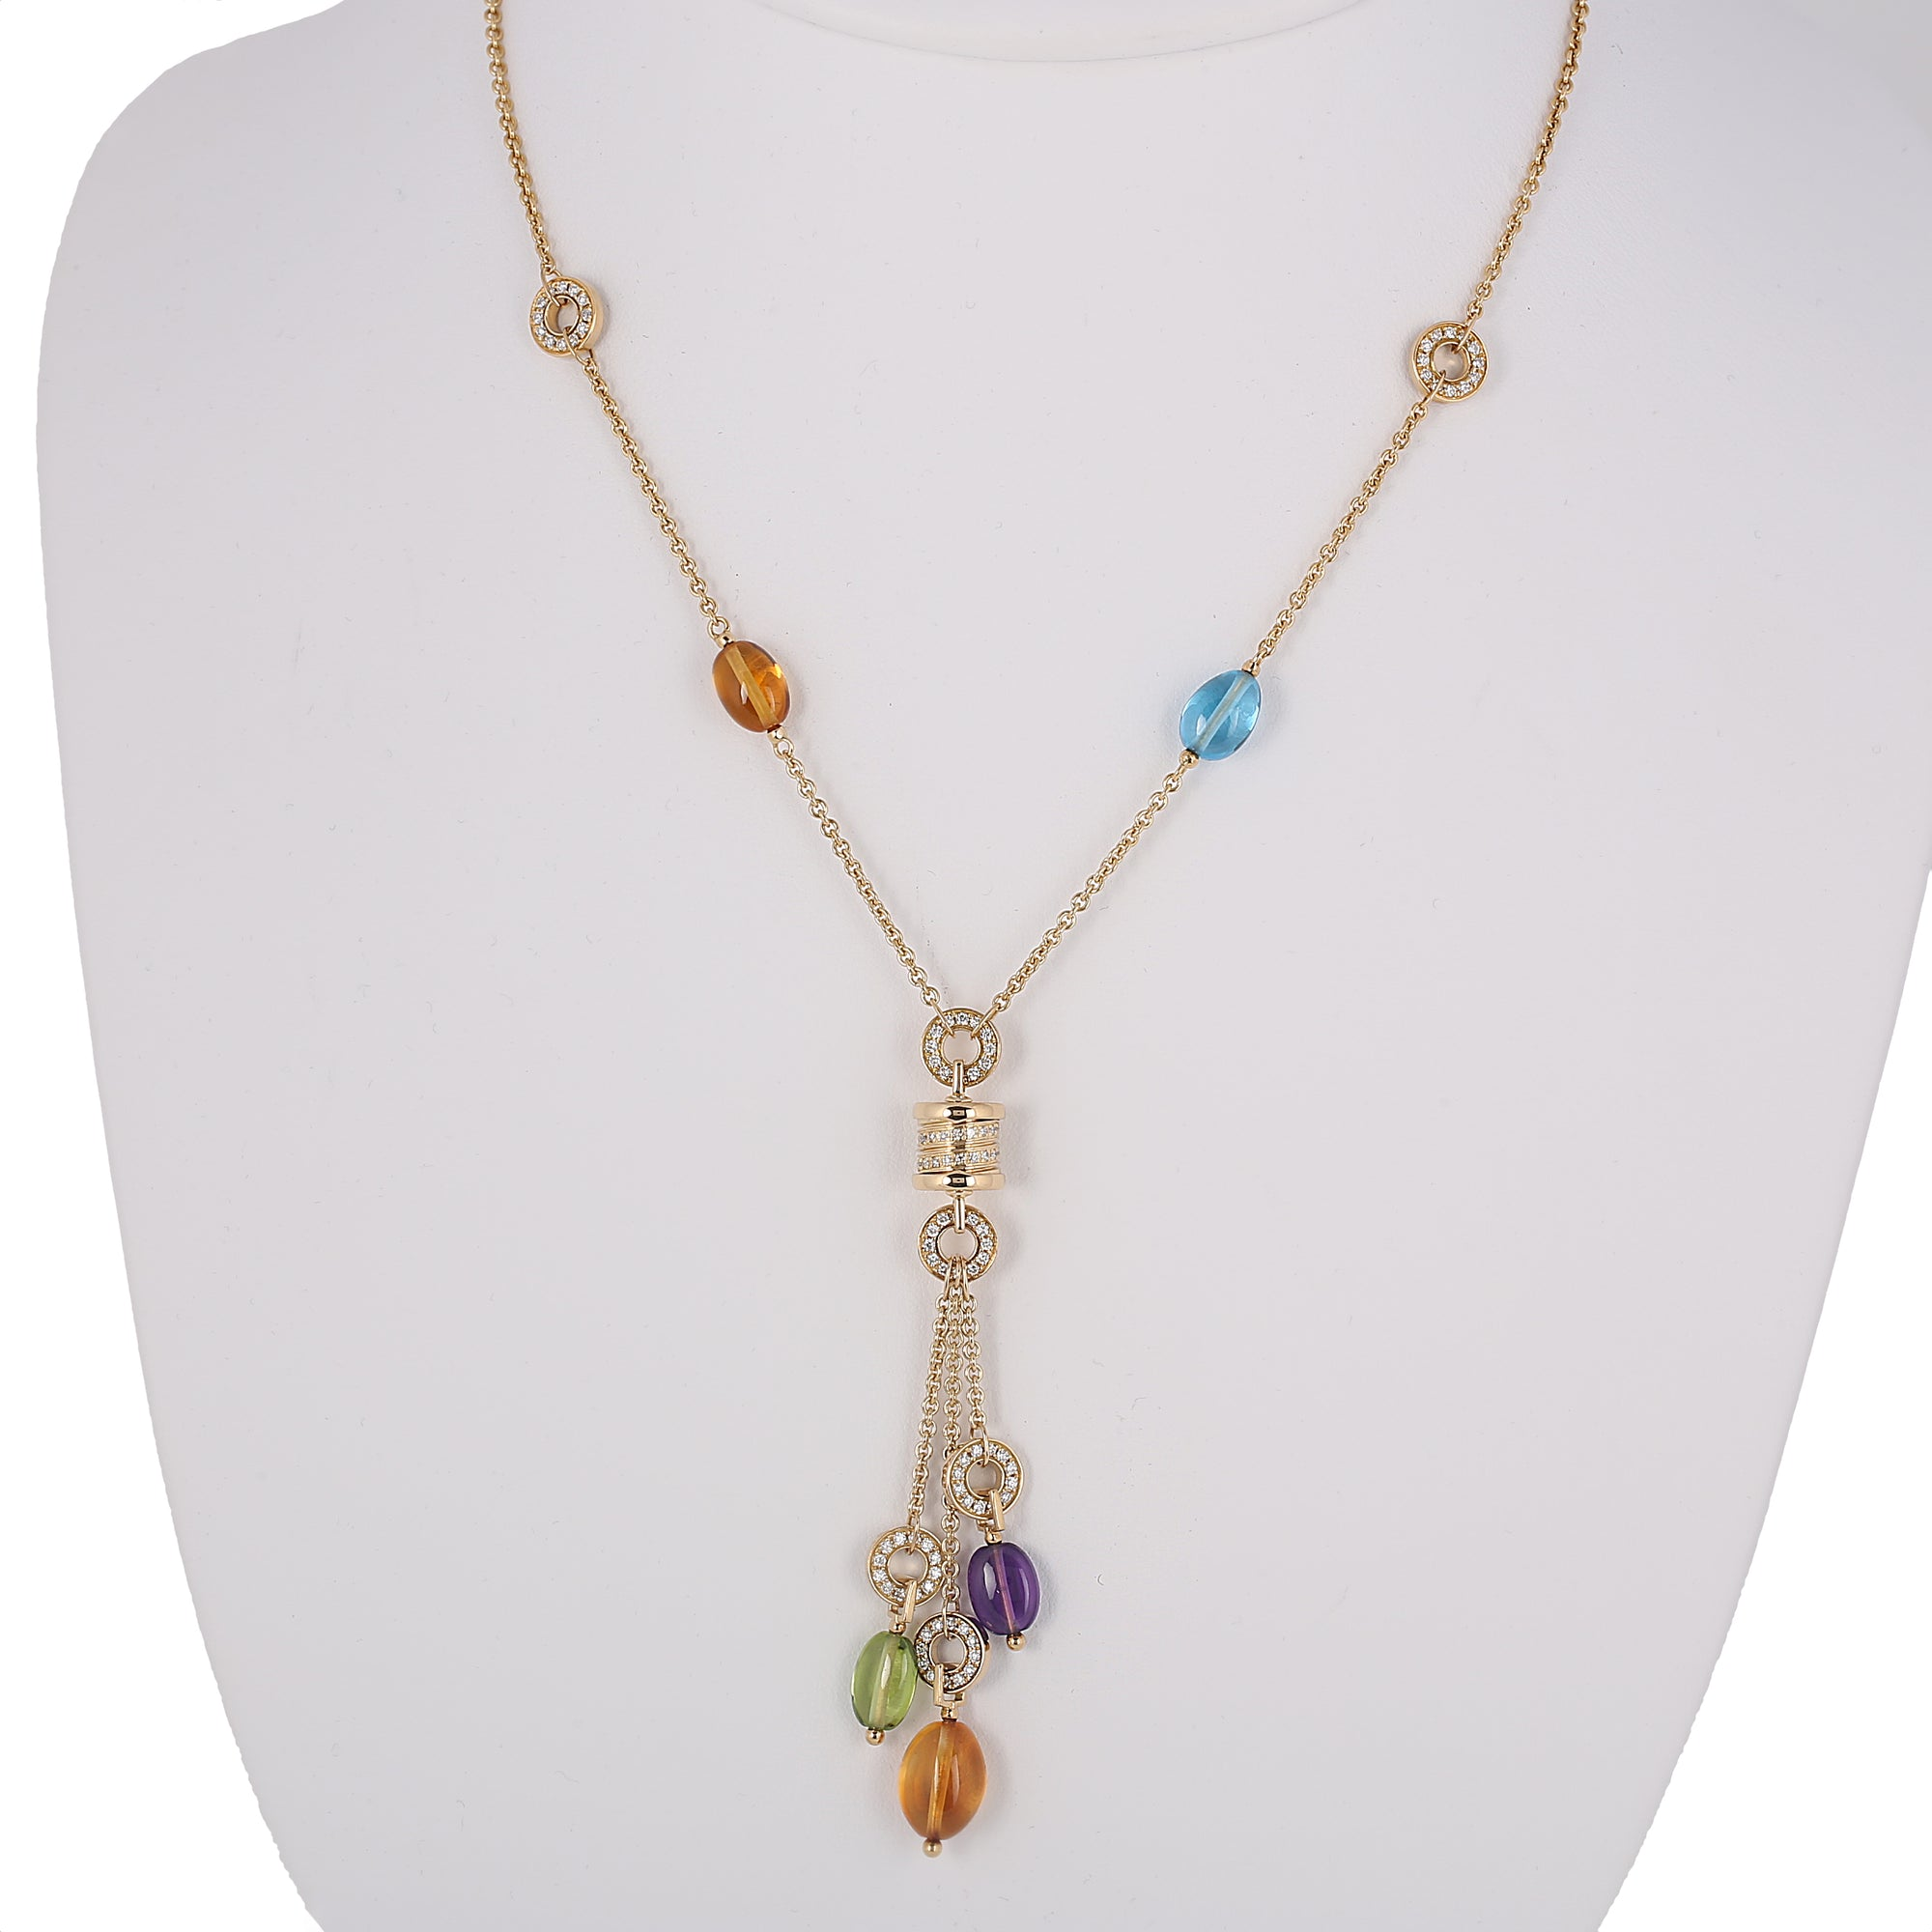 gemstone dabakarov necklace multi gold in stone yellow